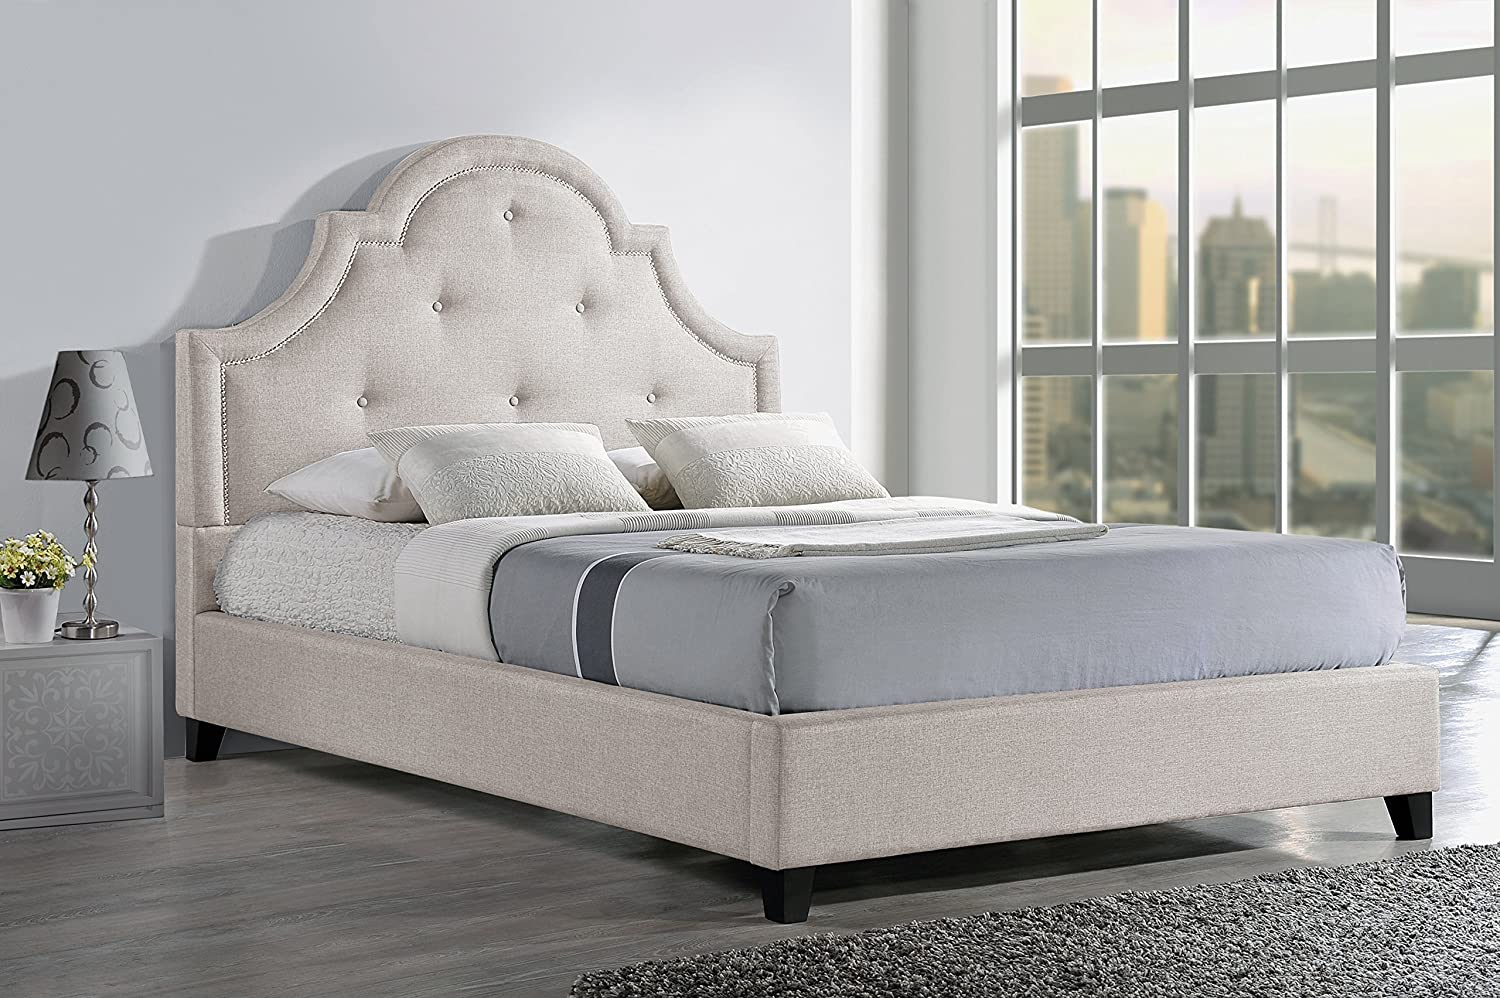 Baxton Studio Colchester Linen Modern Platform Bed - King - Light Beige